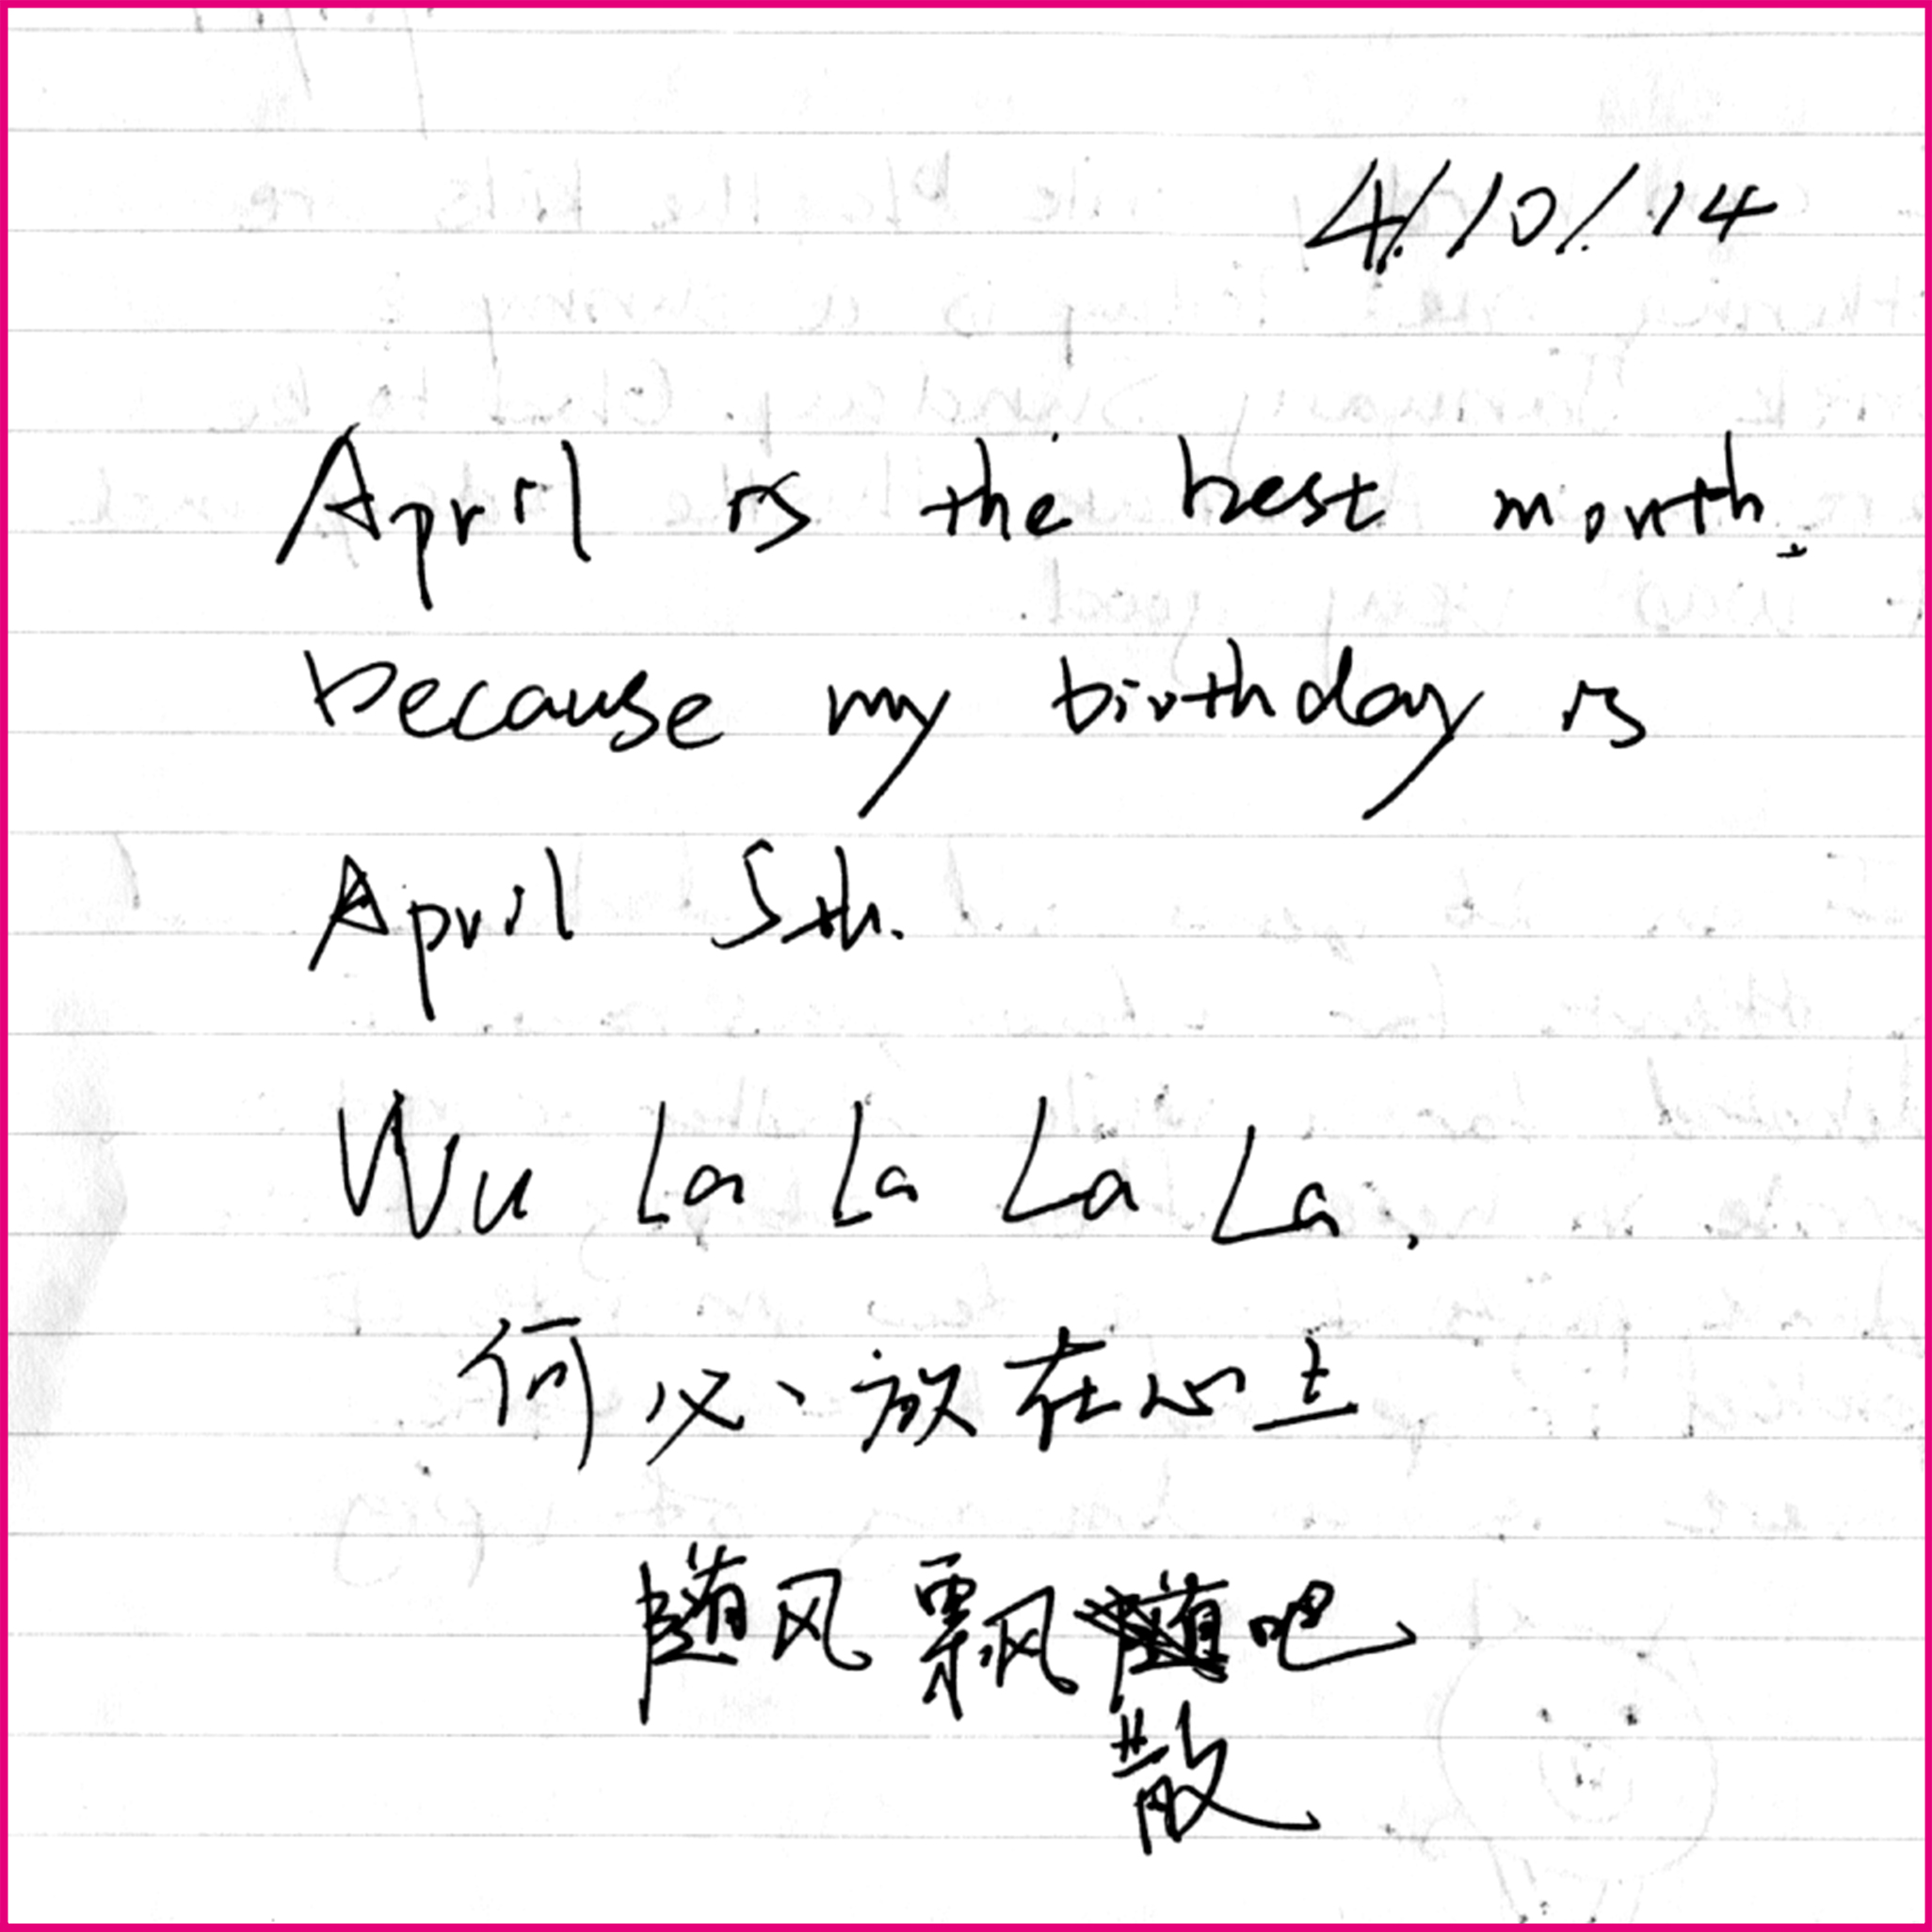 April is the best month because my birthday is April 5th. Wu la la la la.